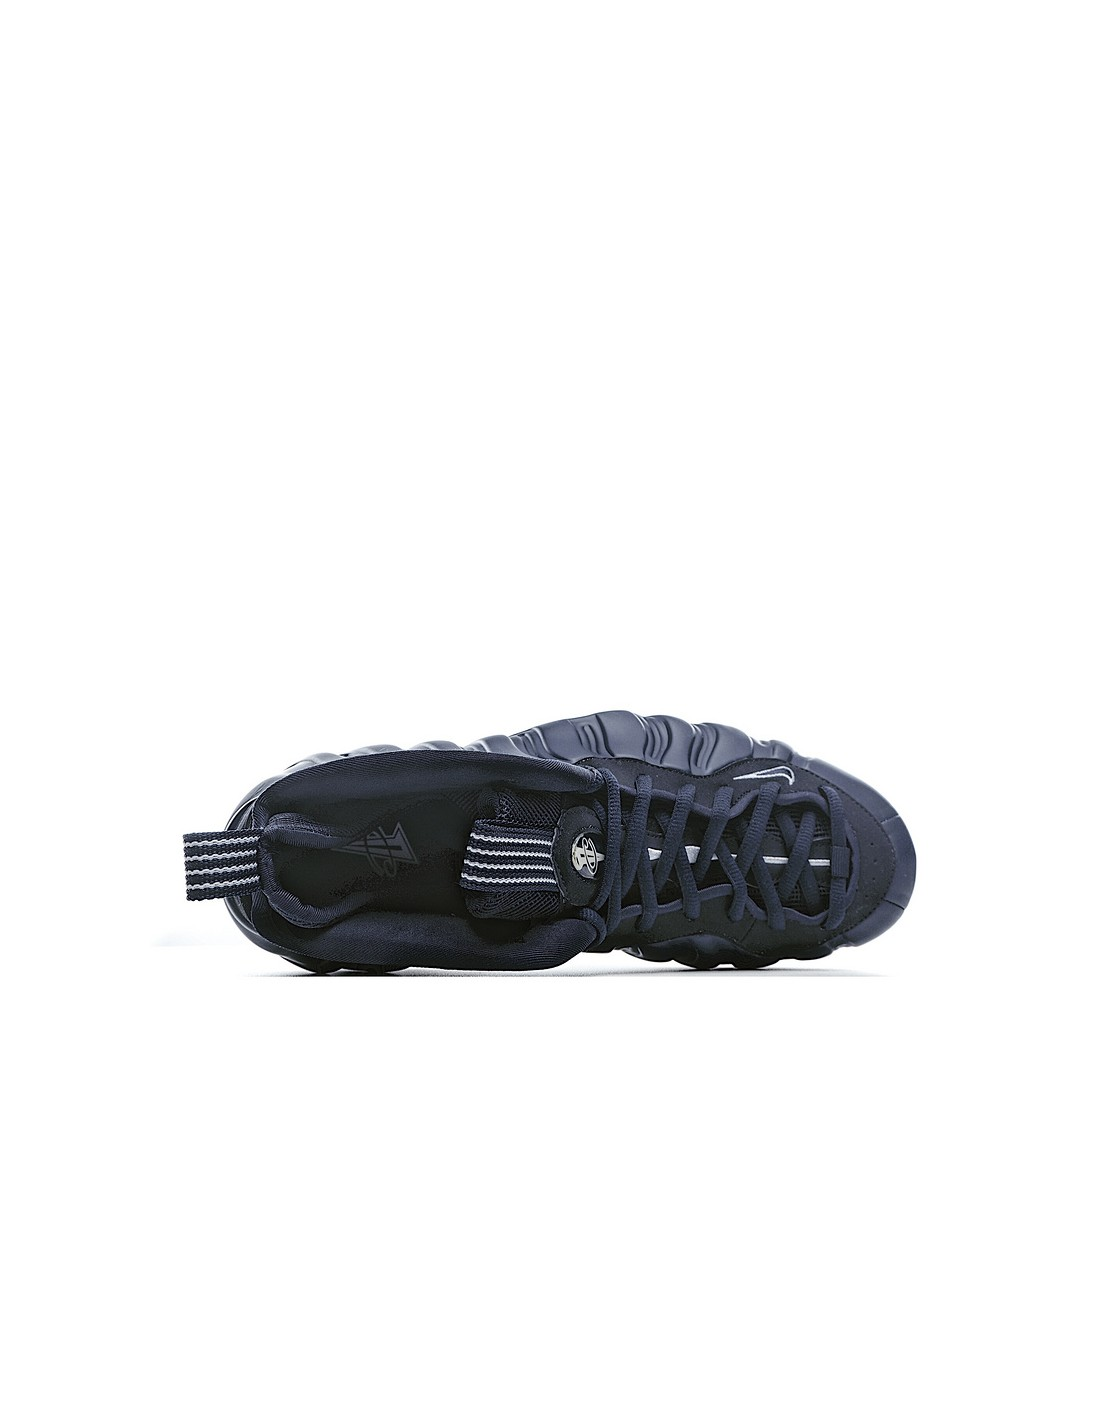 Cheap Nike Air Foamposite, Fake Nike Air Foamposite Shoes Outlet 2021